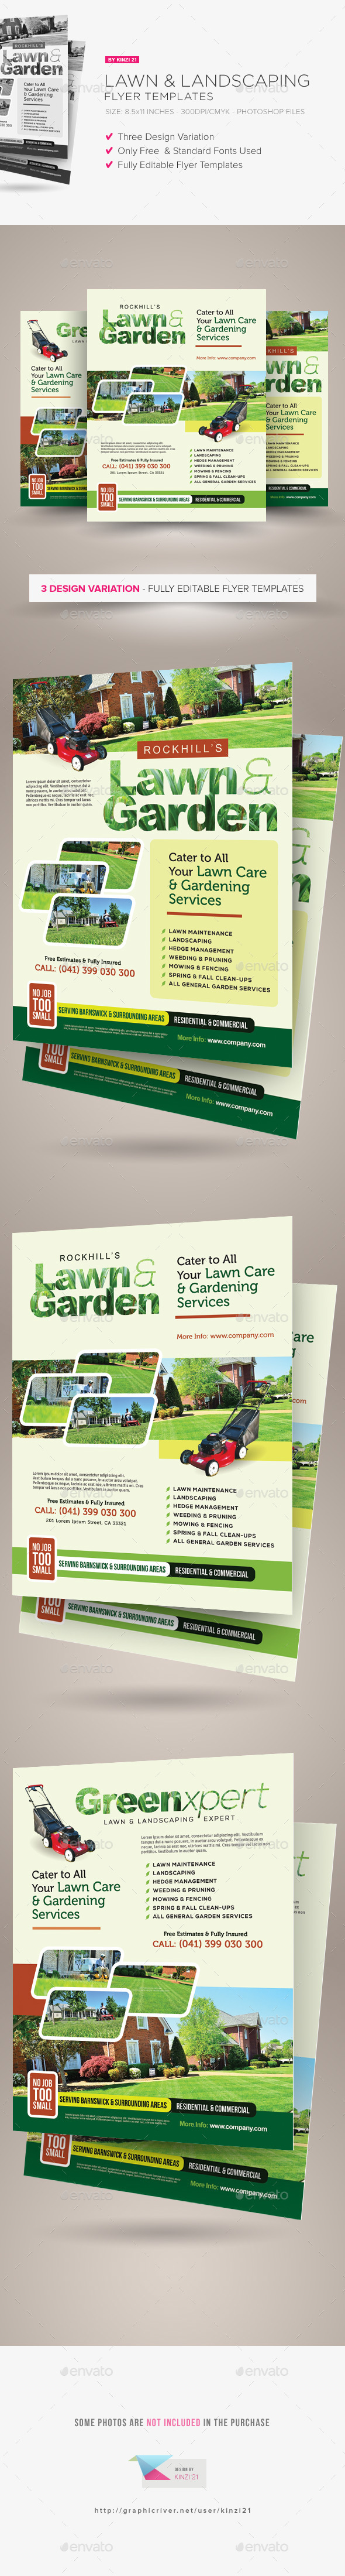 printable lawn service contract form generic sample lawn landscaping flyer templates